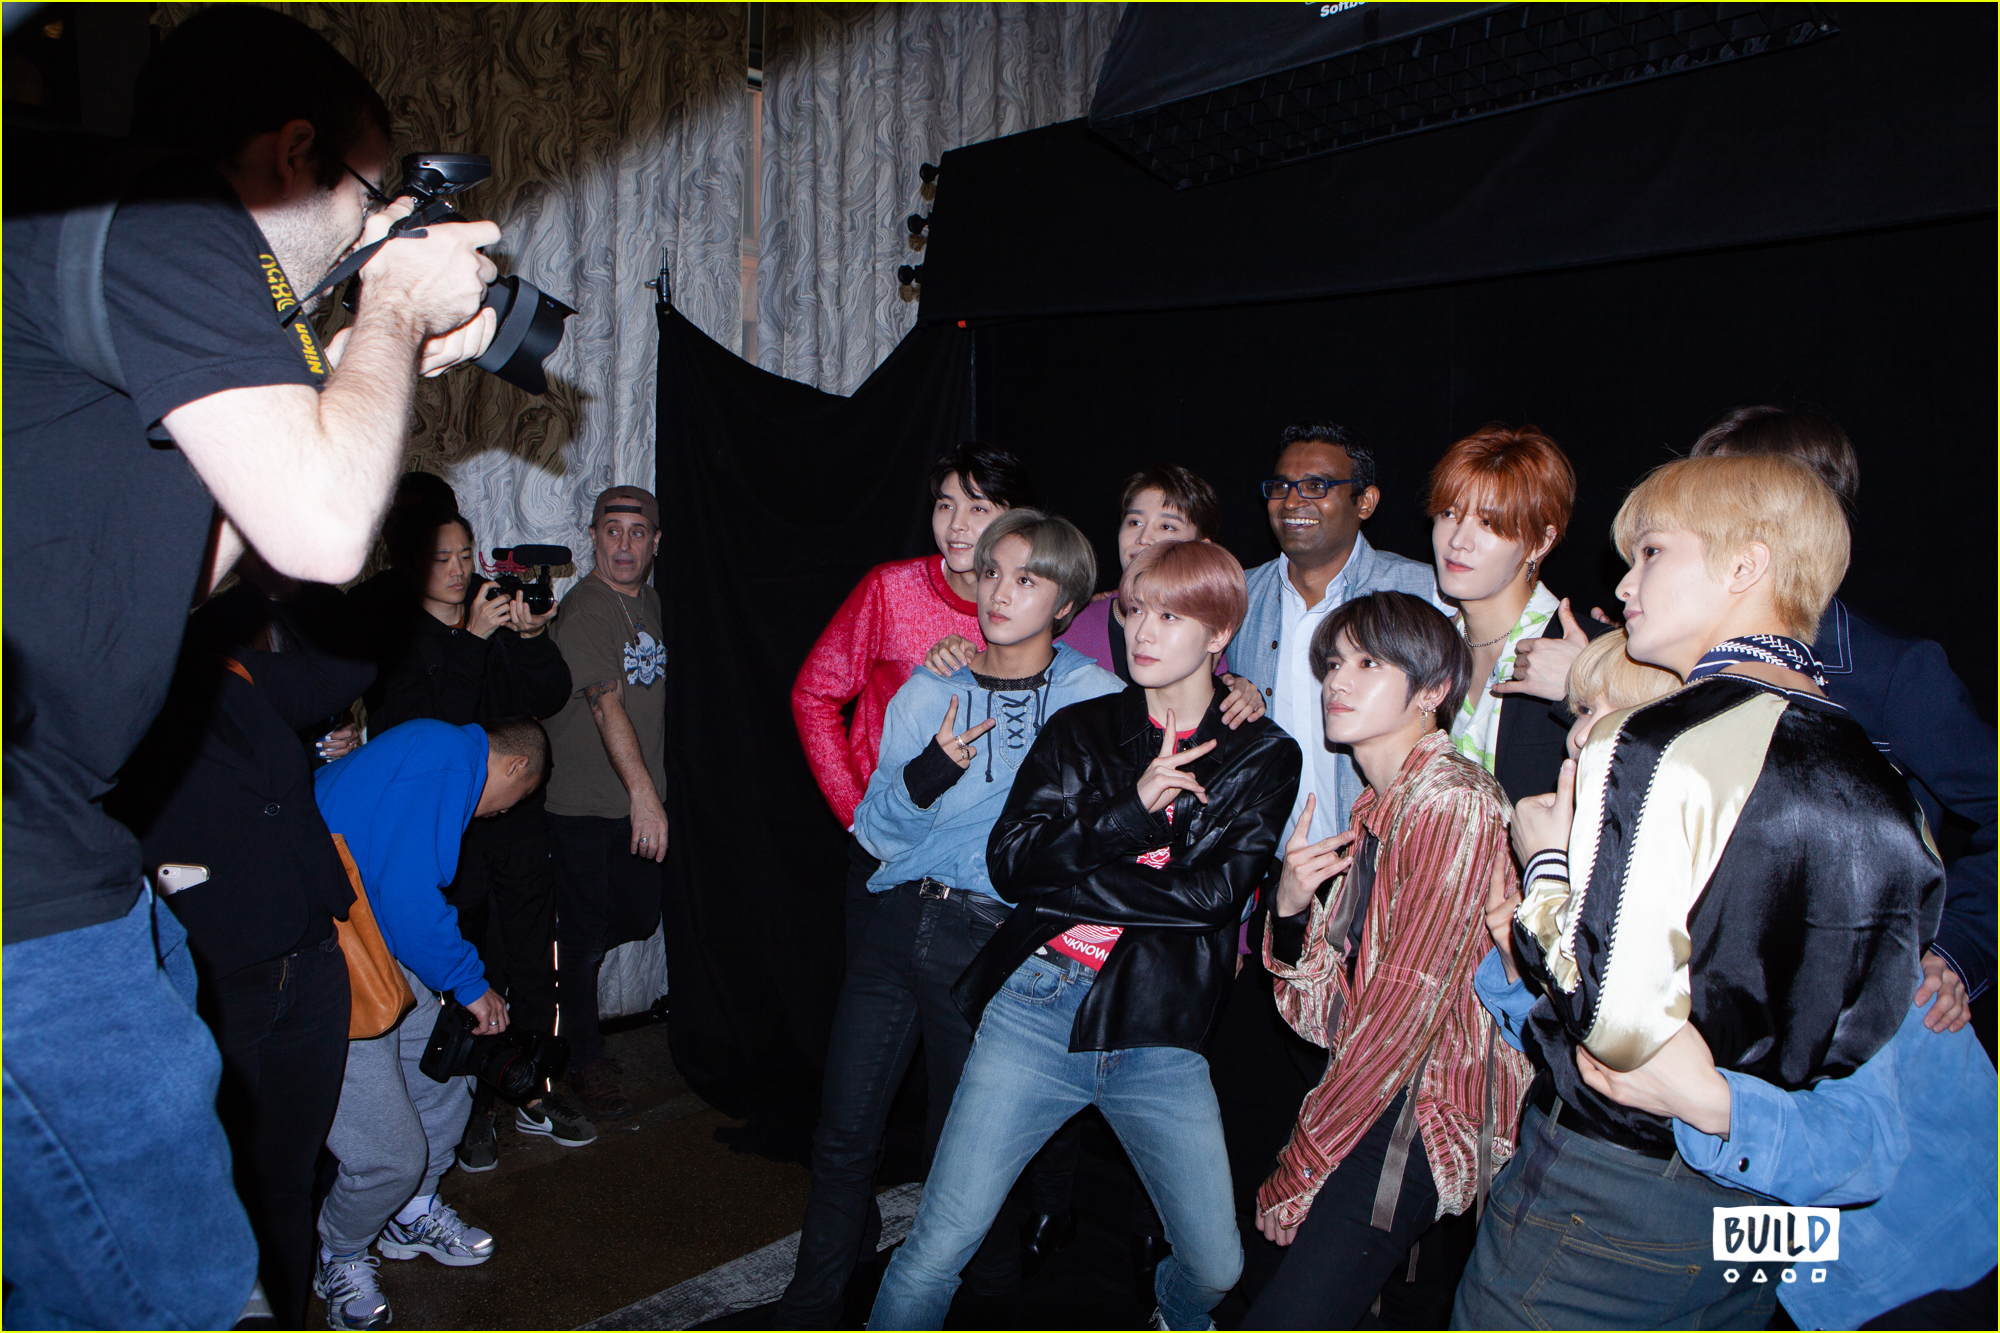 nct 127 look up to justin bieber as a role model 01